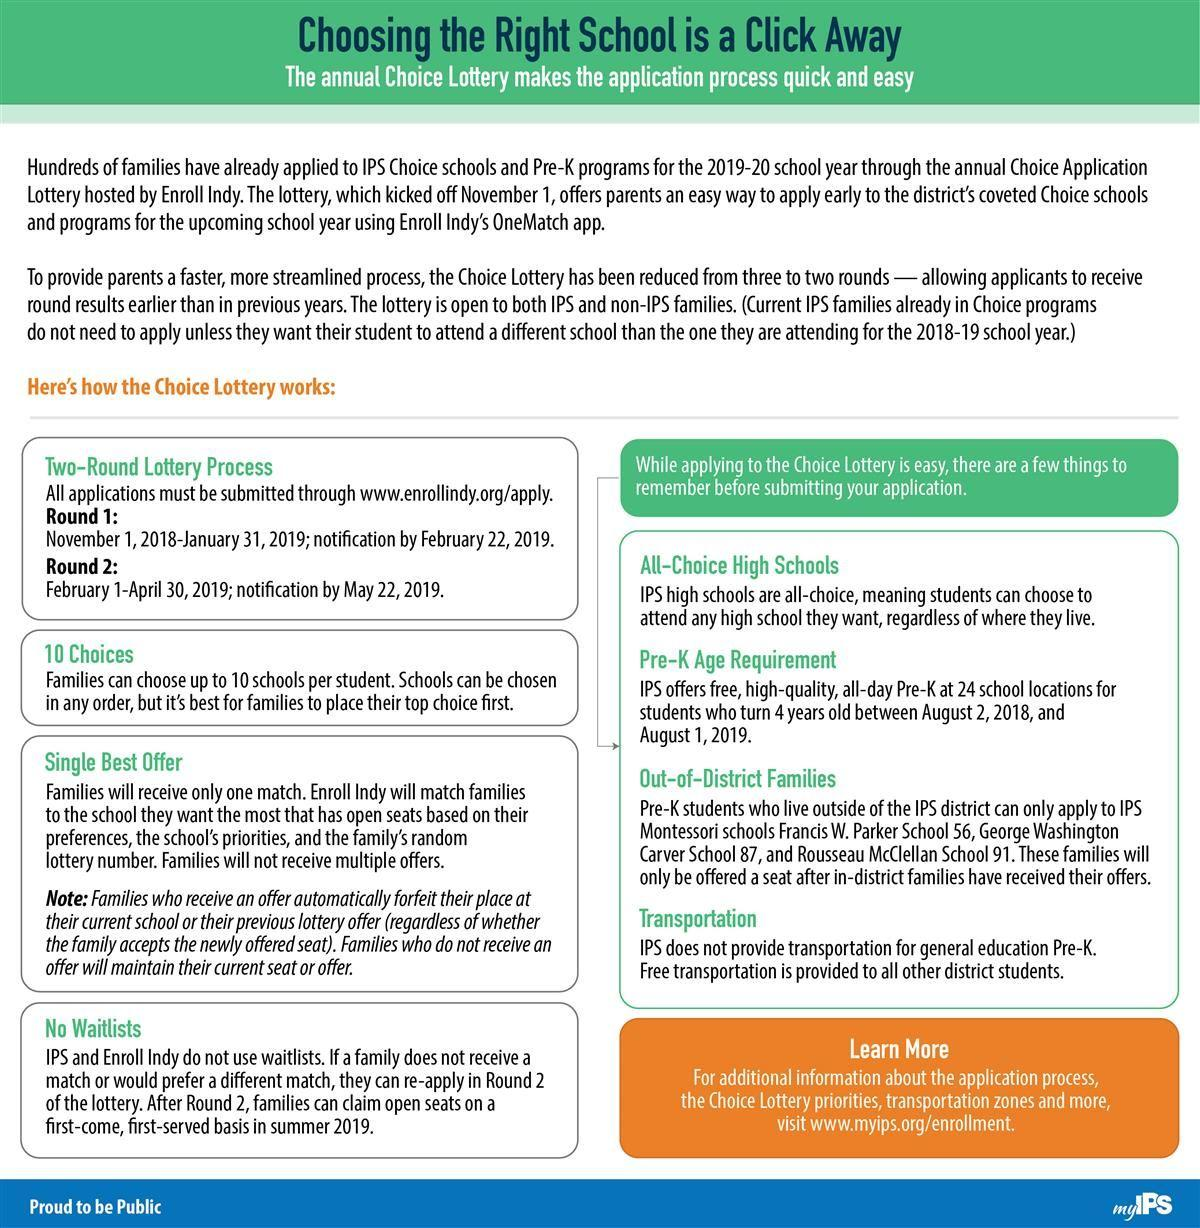 2019-20 Choice Application Lottery Infographic